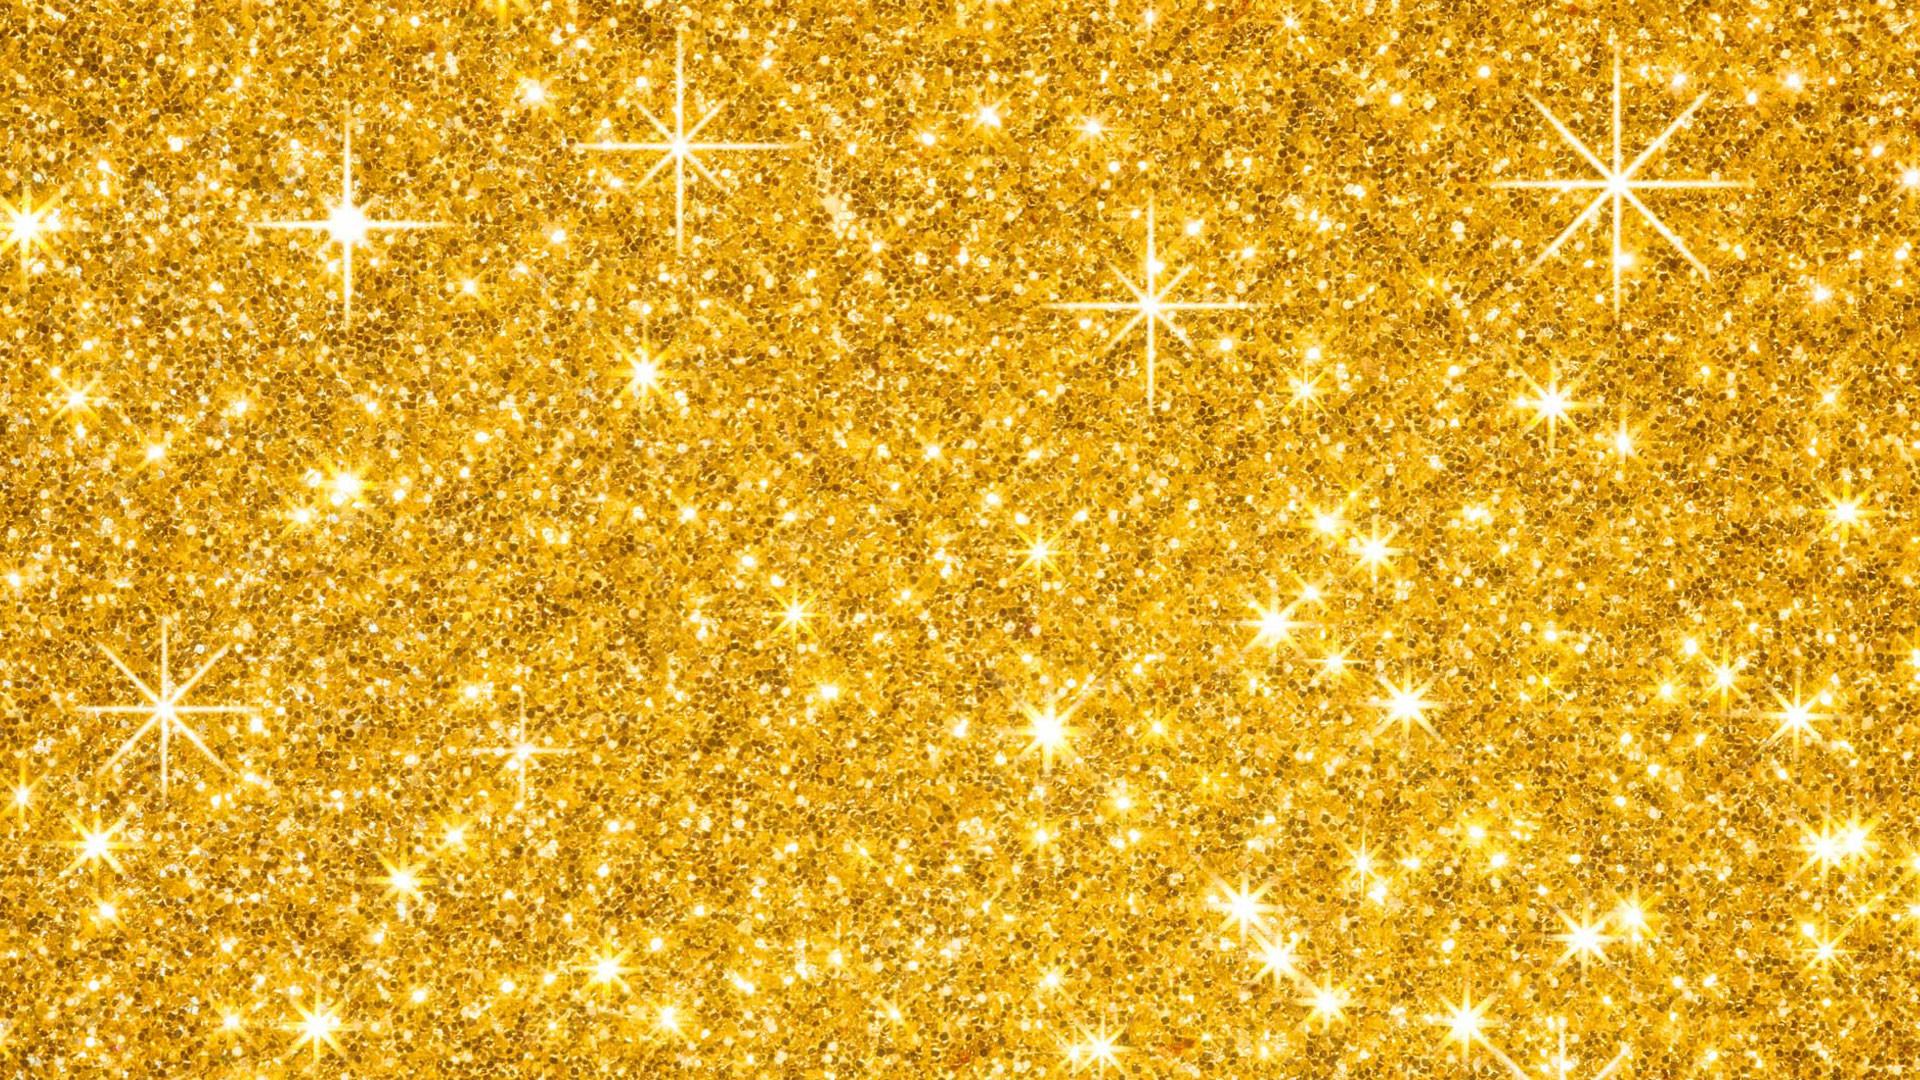 1920x1080 Gold Glitter Background